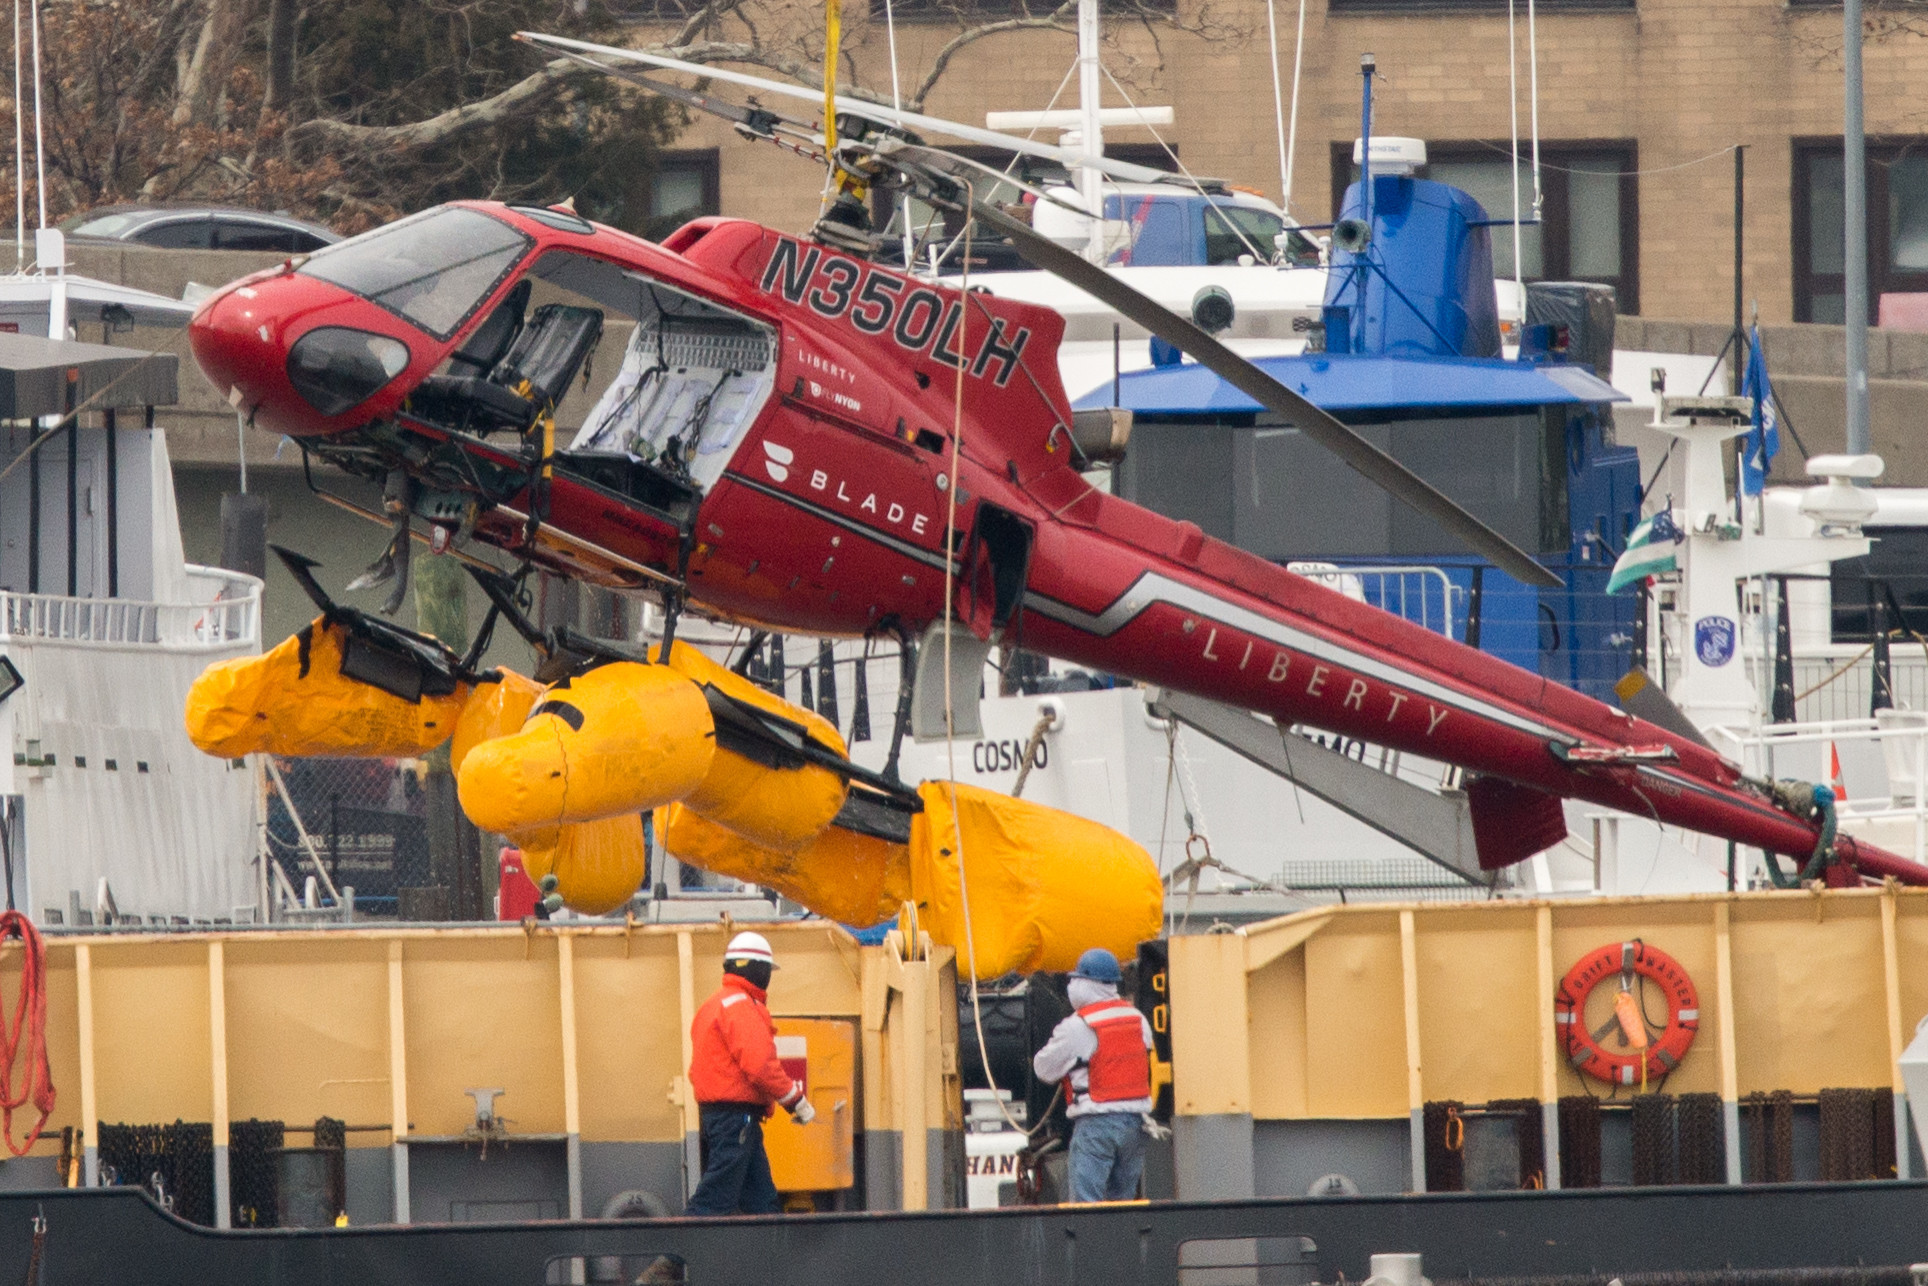 Big enough to fly a helicopter through: Investigators blame loophole for East River chopper crash that killed 5 passengers